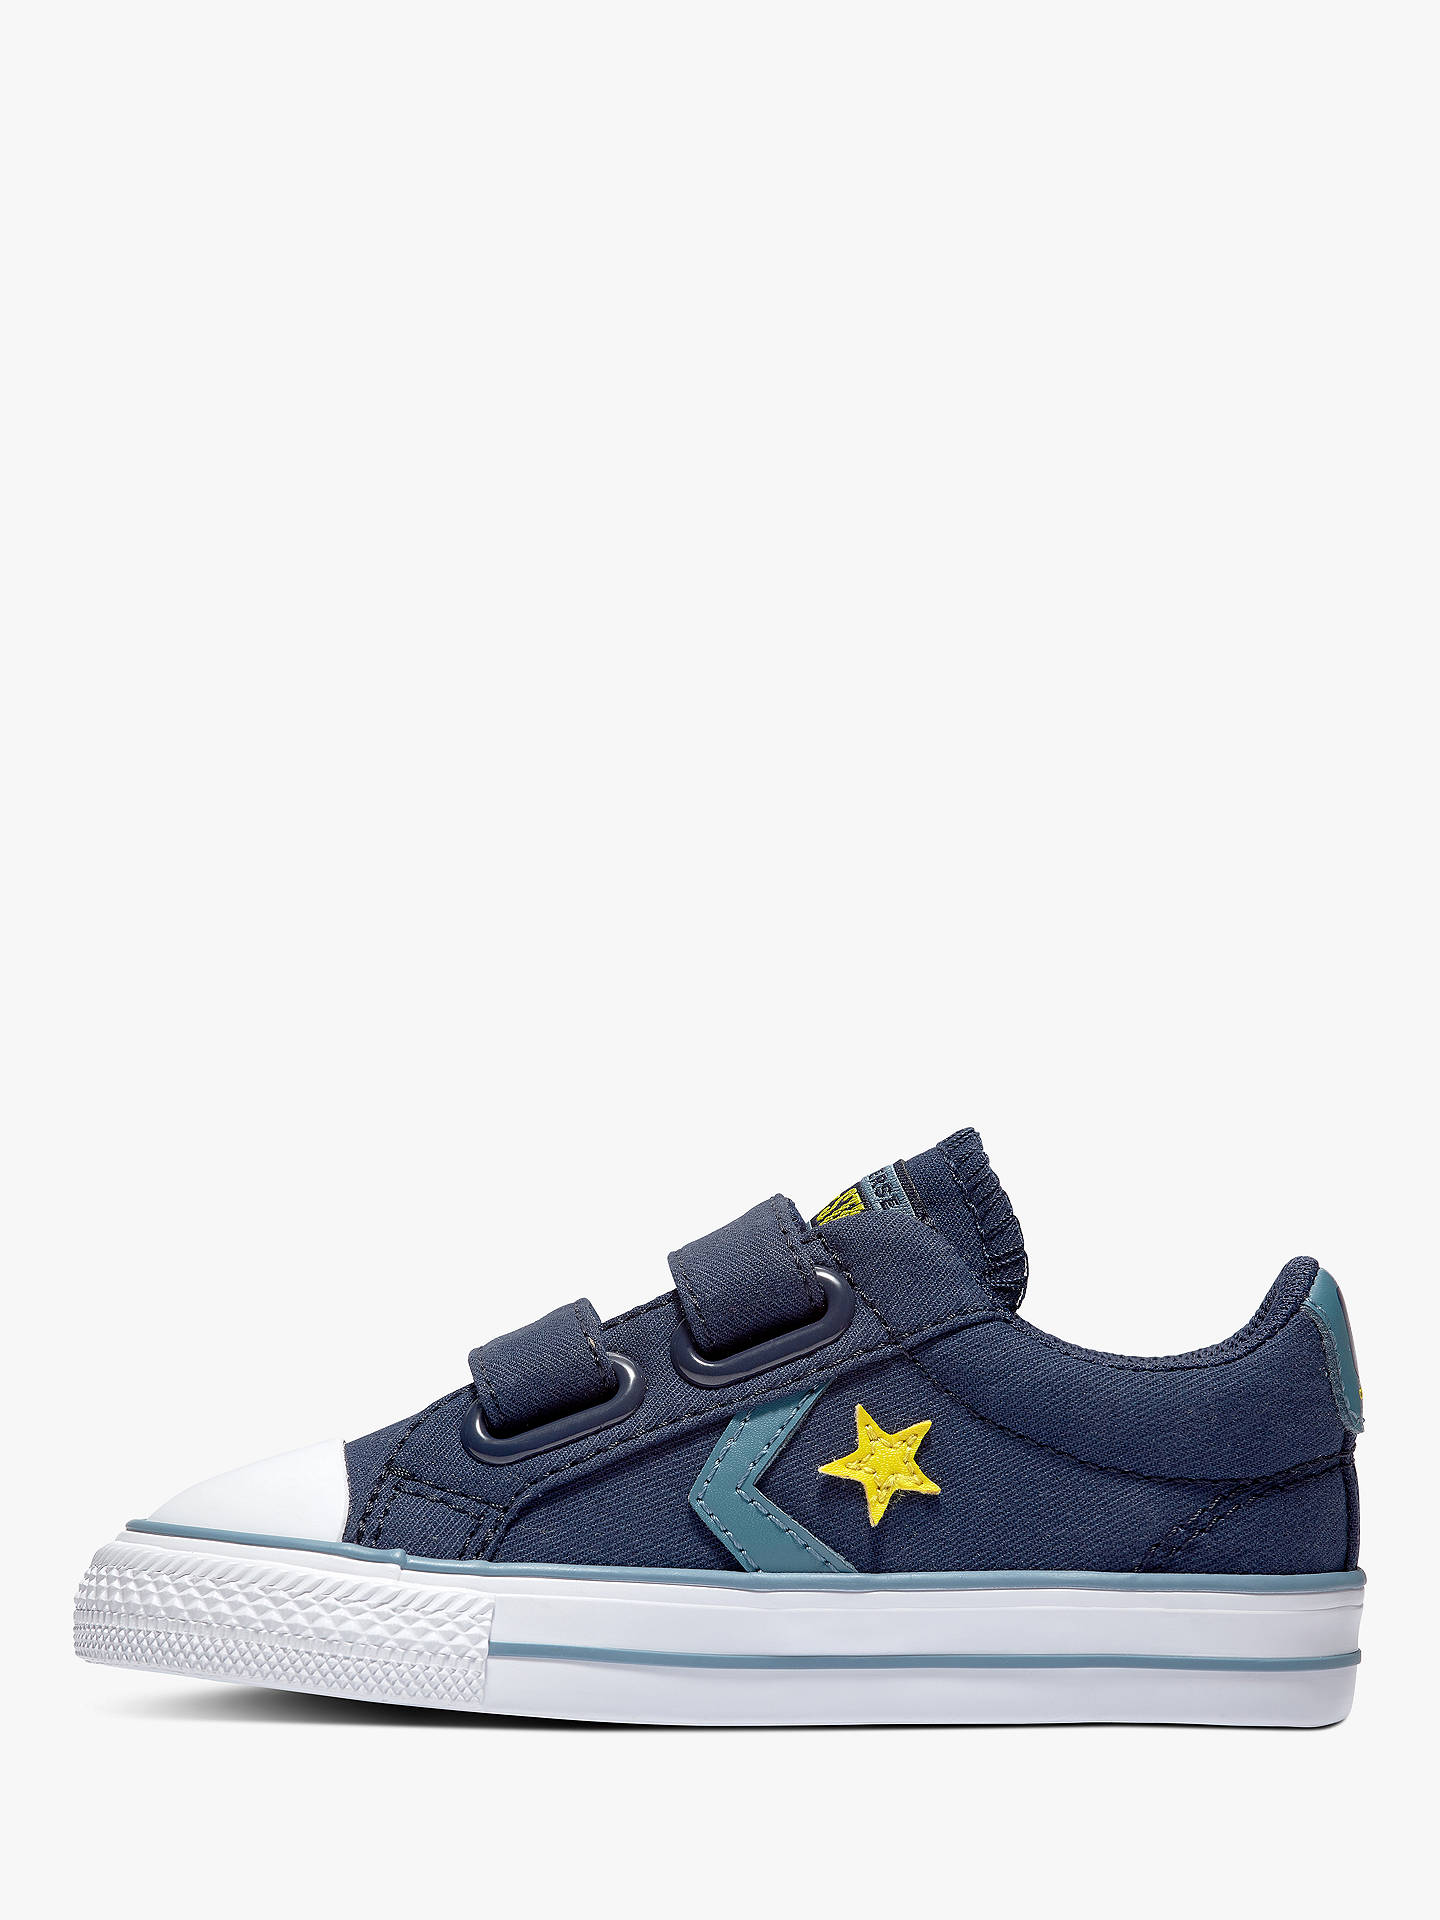 Converse Children's Star Player 2V Trainers, Navy at John